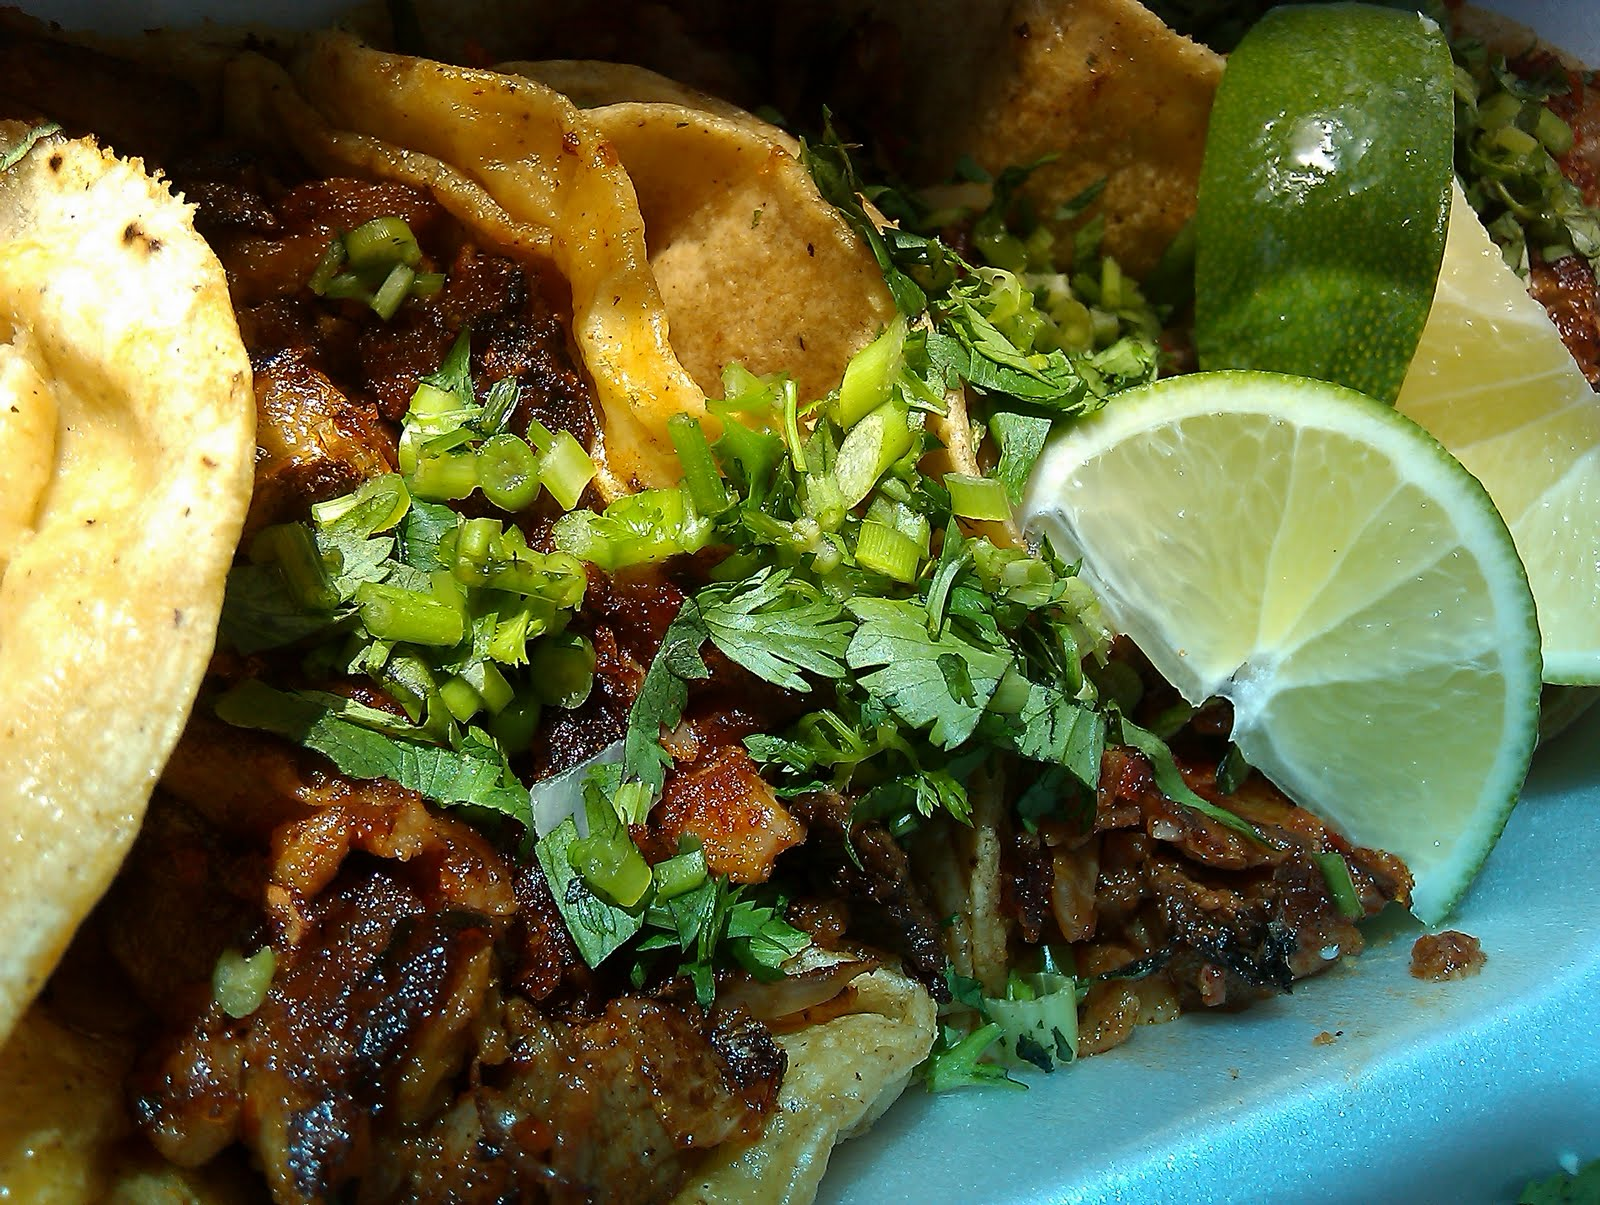 ... pork) tacos with cilantro and lime, refried beans, rice, water – $10